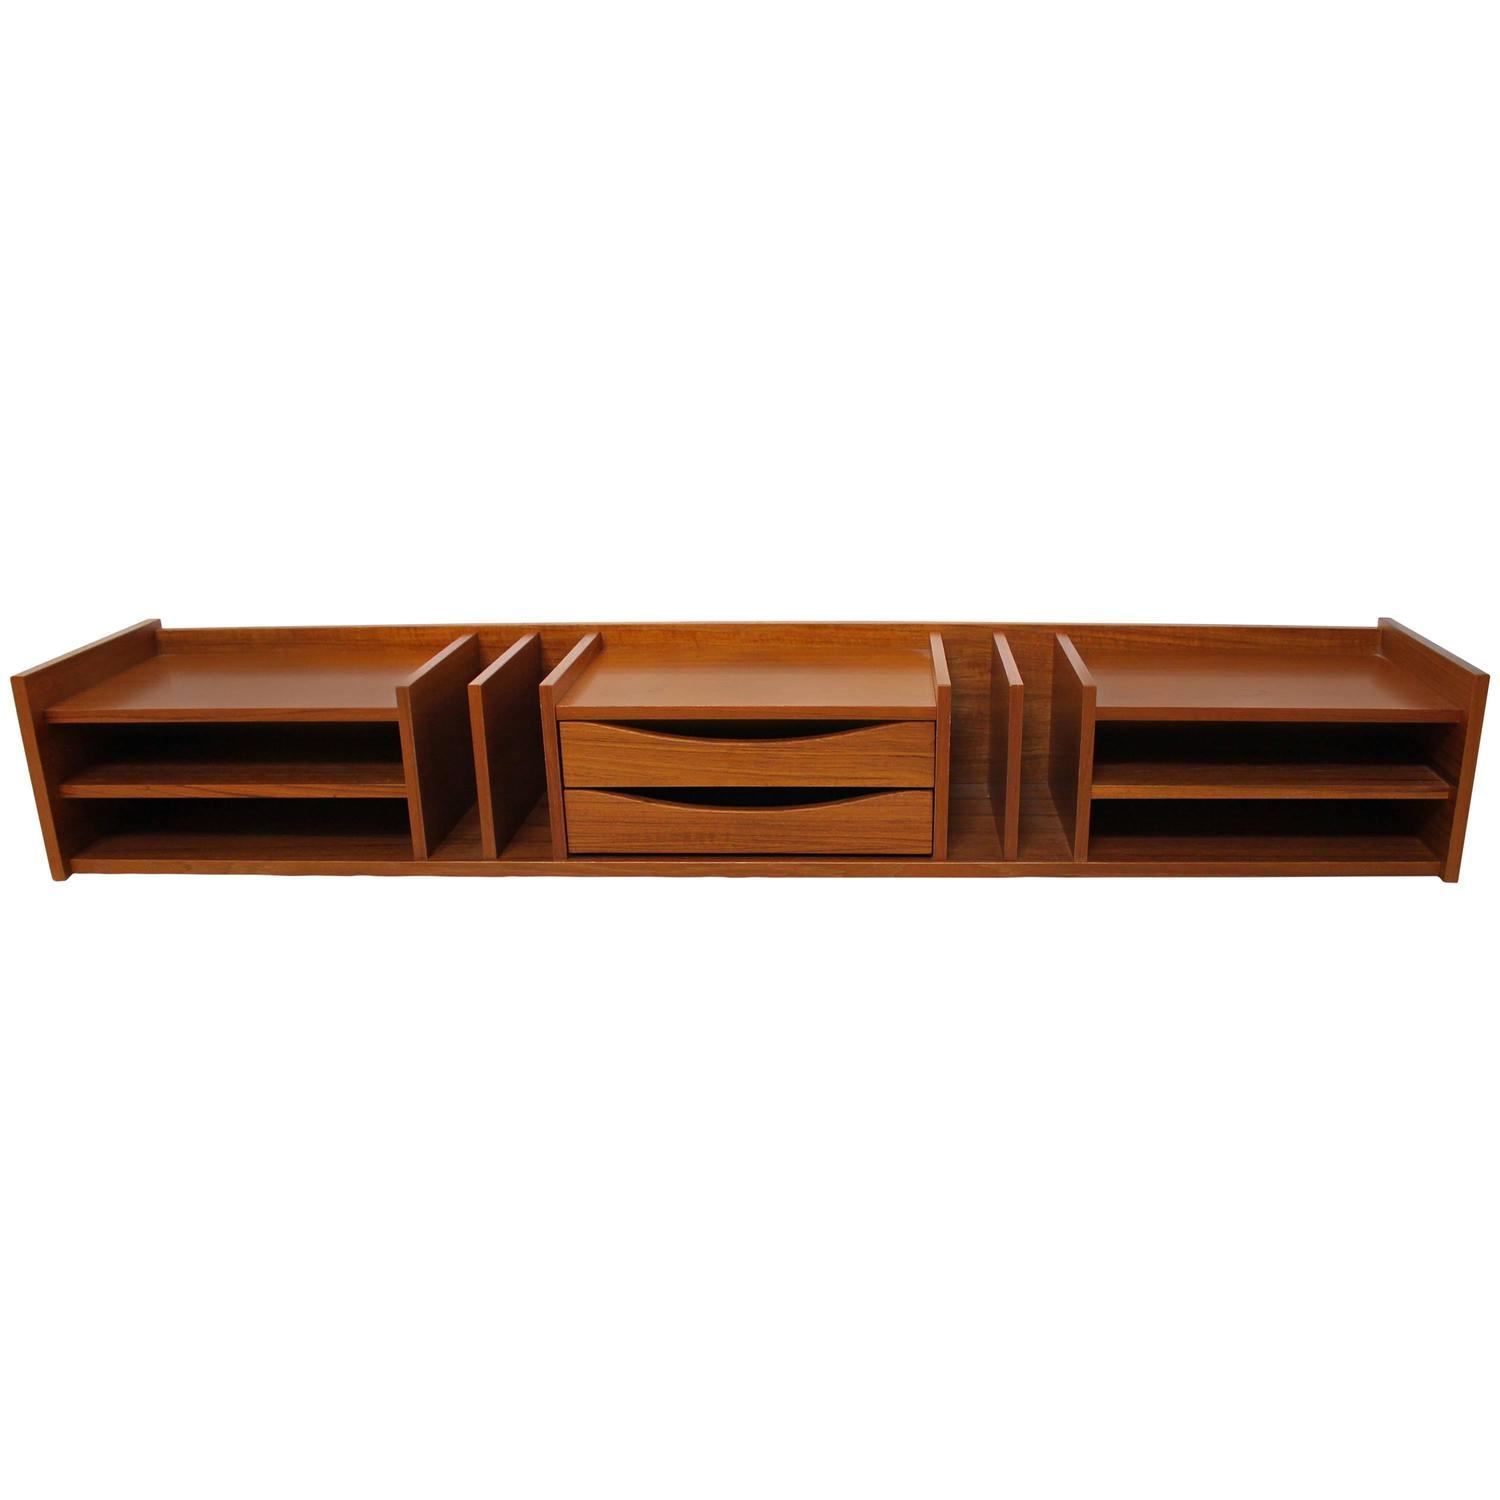 Danish modern teak desk organizer by pedersen and hansen - Designer desk accessories and organizers ...